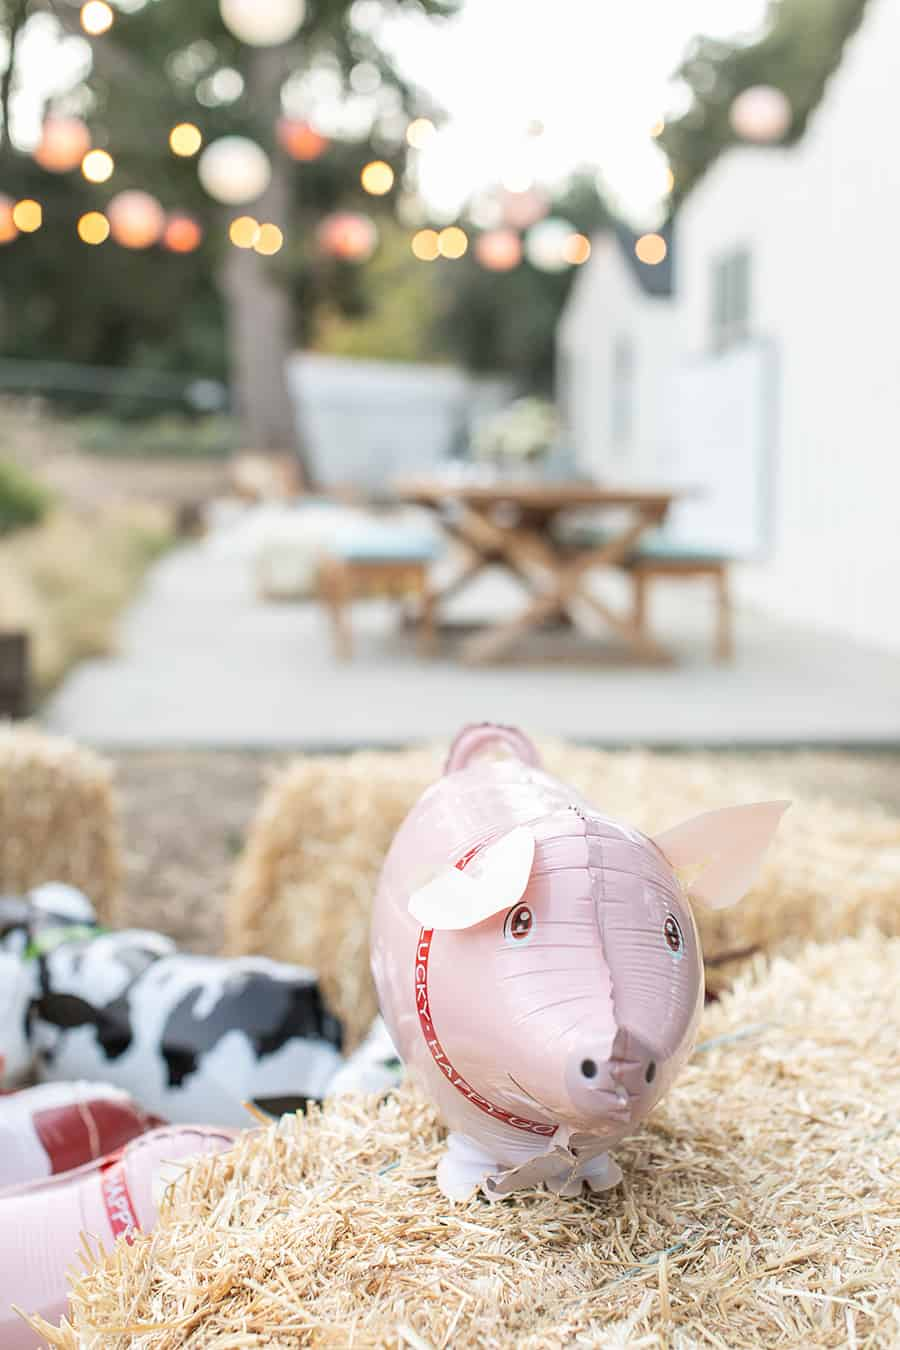 Pig balloon on hay bale